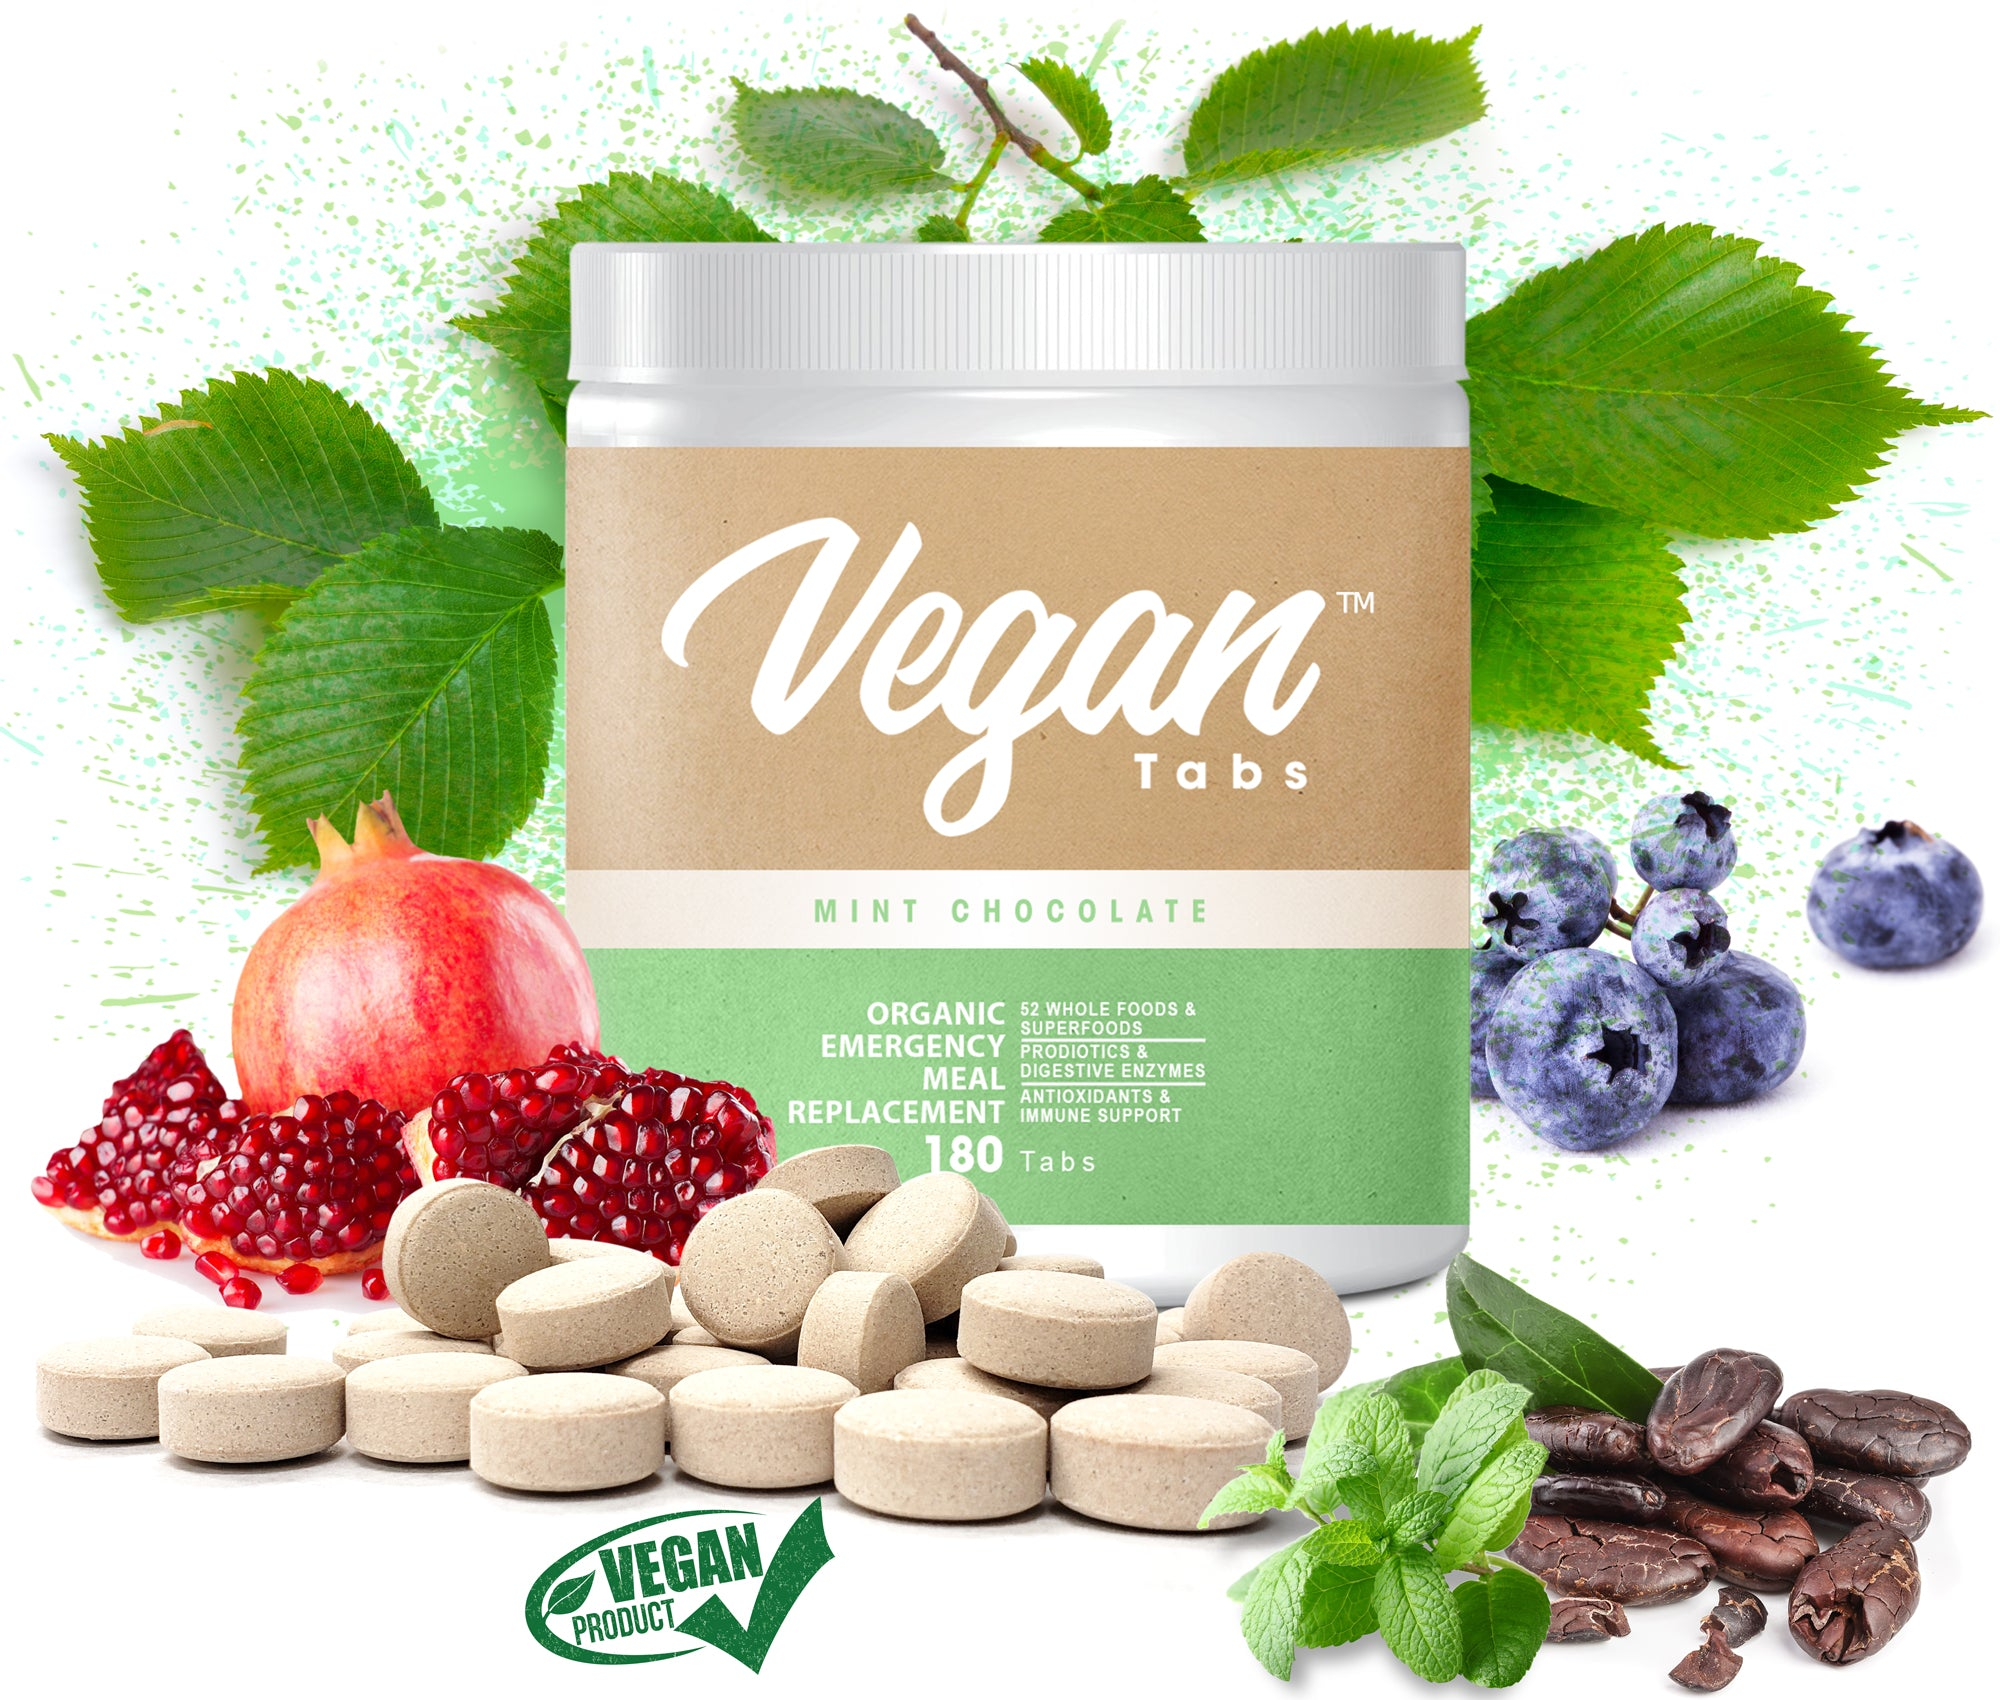 180 Organic Protein tablets, 20g of Plant-Based Protein for Women and Men, Probiotic, Vegan Friendly, Non-GMO, Gluten-Free, Dairy-Free, Soy Free, Mint Chocolate